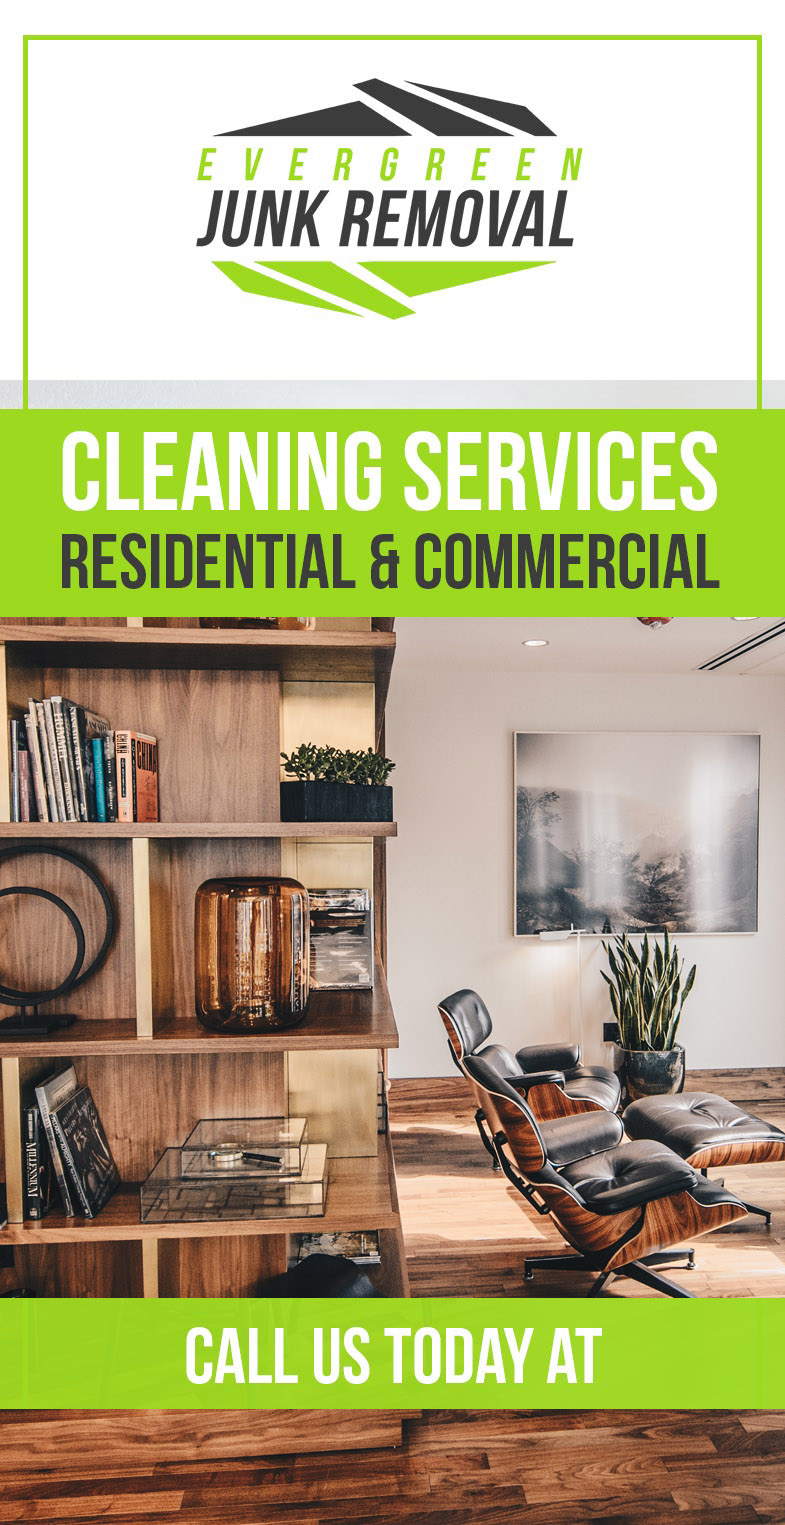 Jupiter Commercial Cleaning